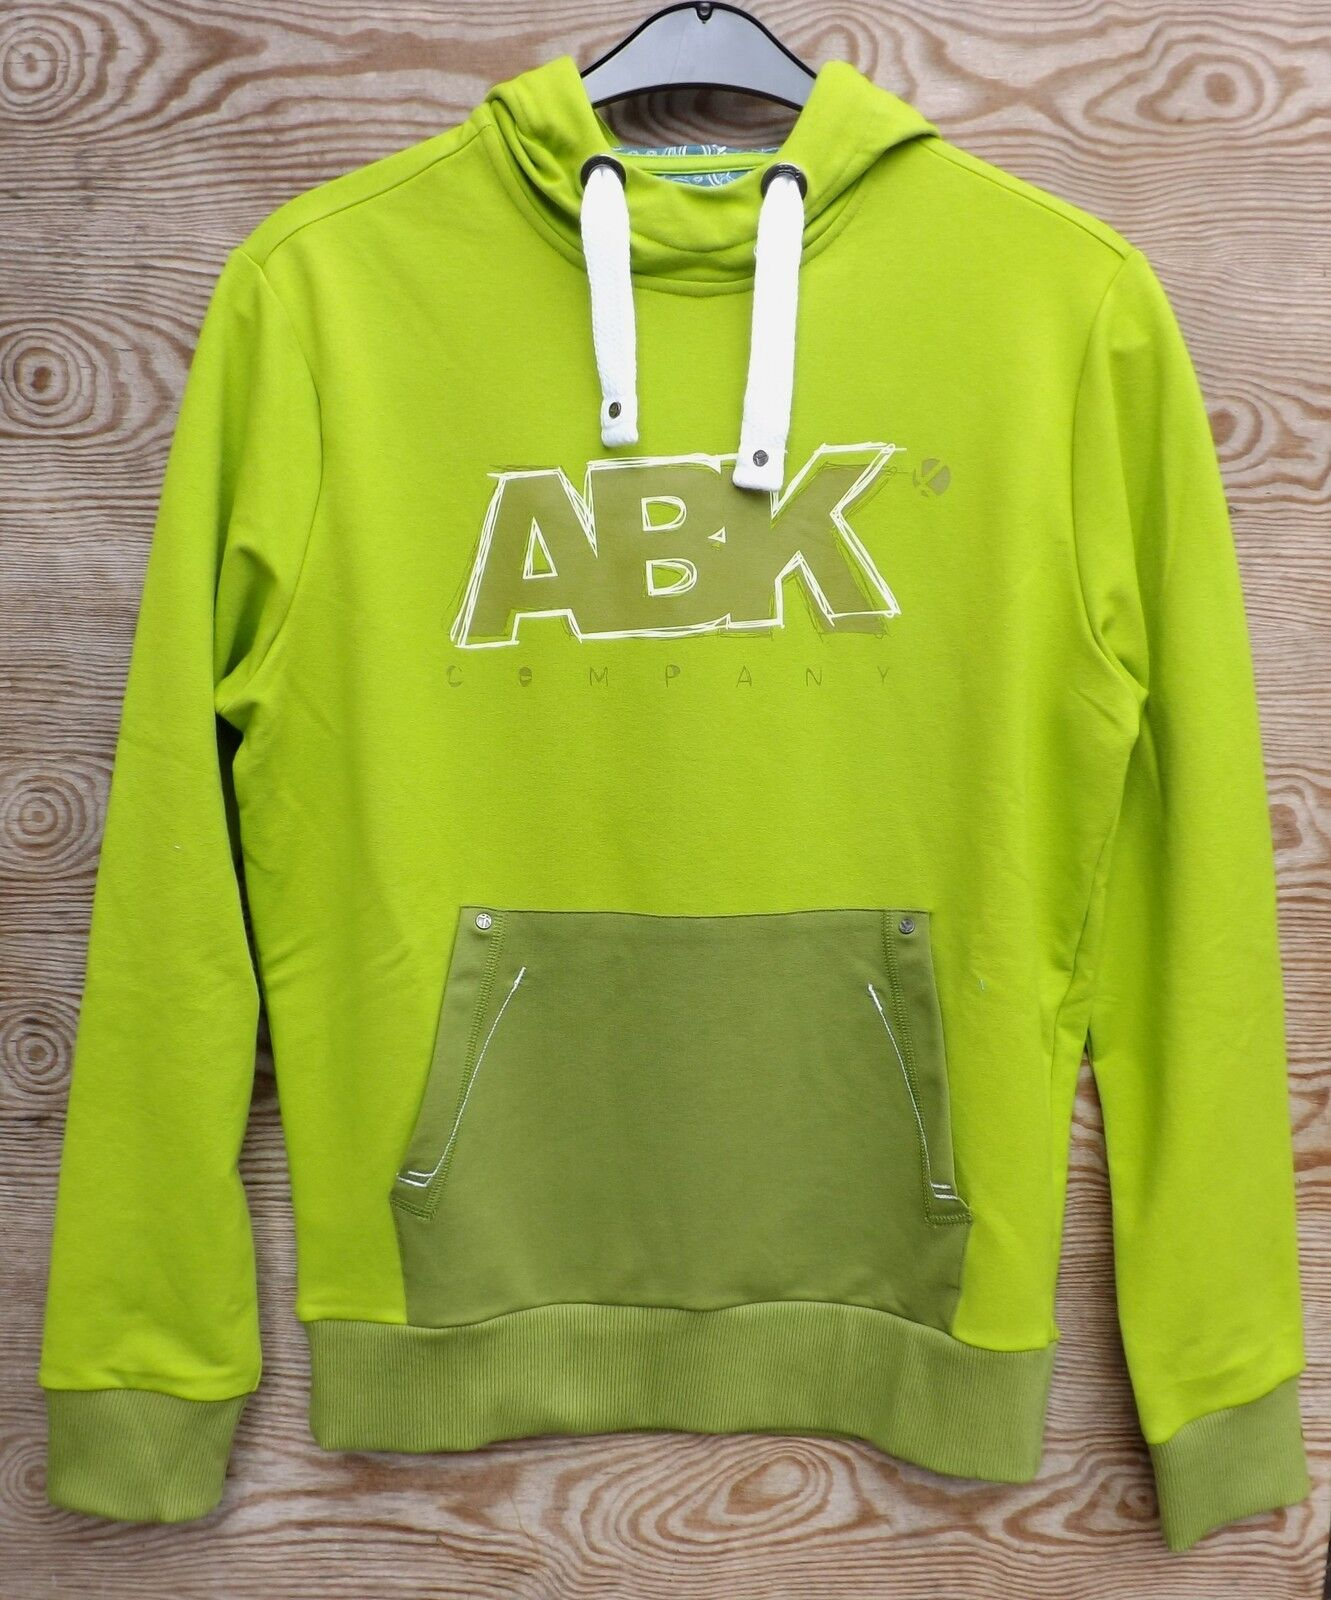 Abk Baloo Hoodie Men, Hoody Sweater for Men, Chartreuse Green   save up to 70%